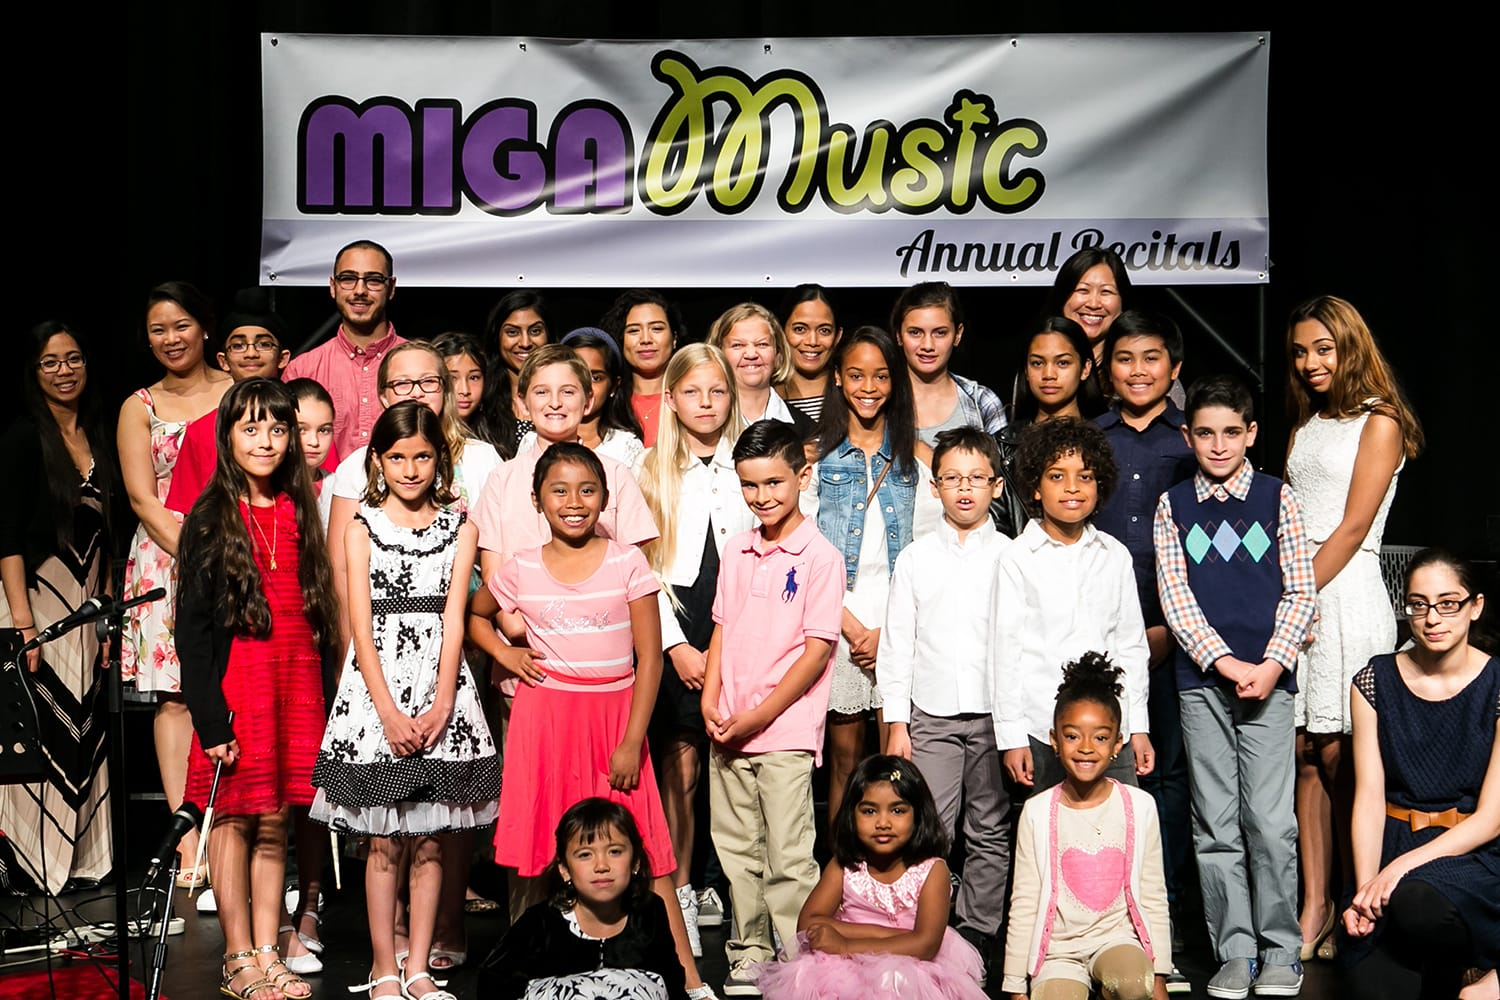 Group photo of our Students and Teachers at the 2016 MIGA Music Recitals